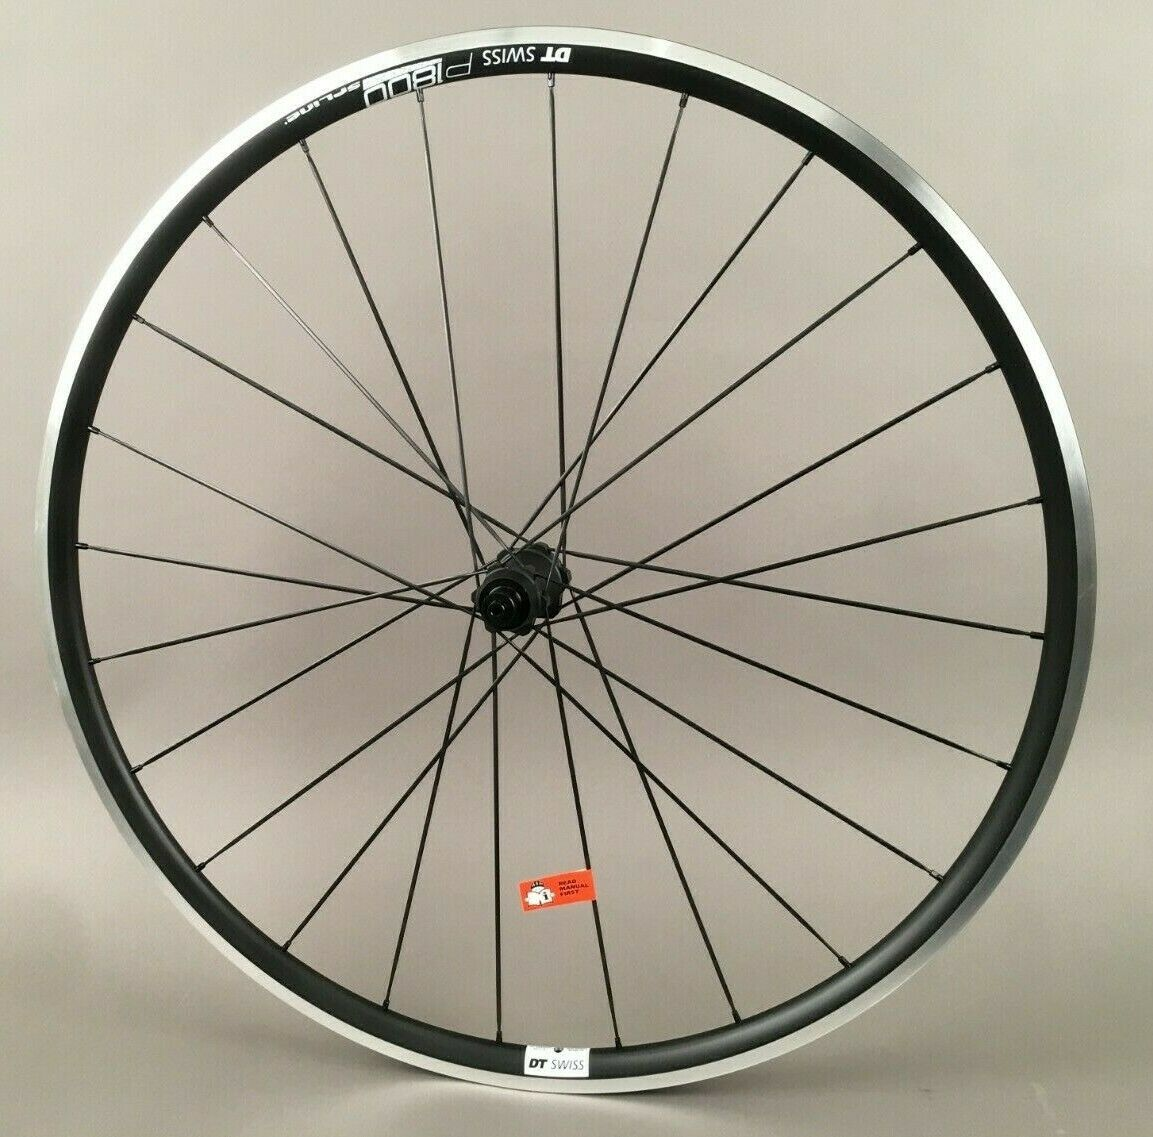 DT Swiss P 1800 Spline 23 Road Bike Tubeless Clincher SRAM XDR